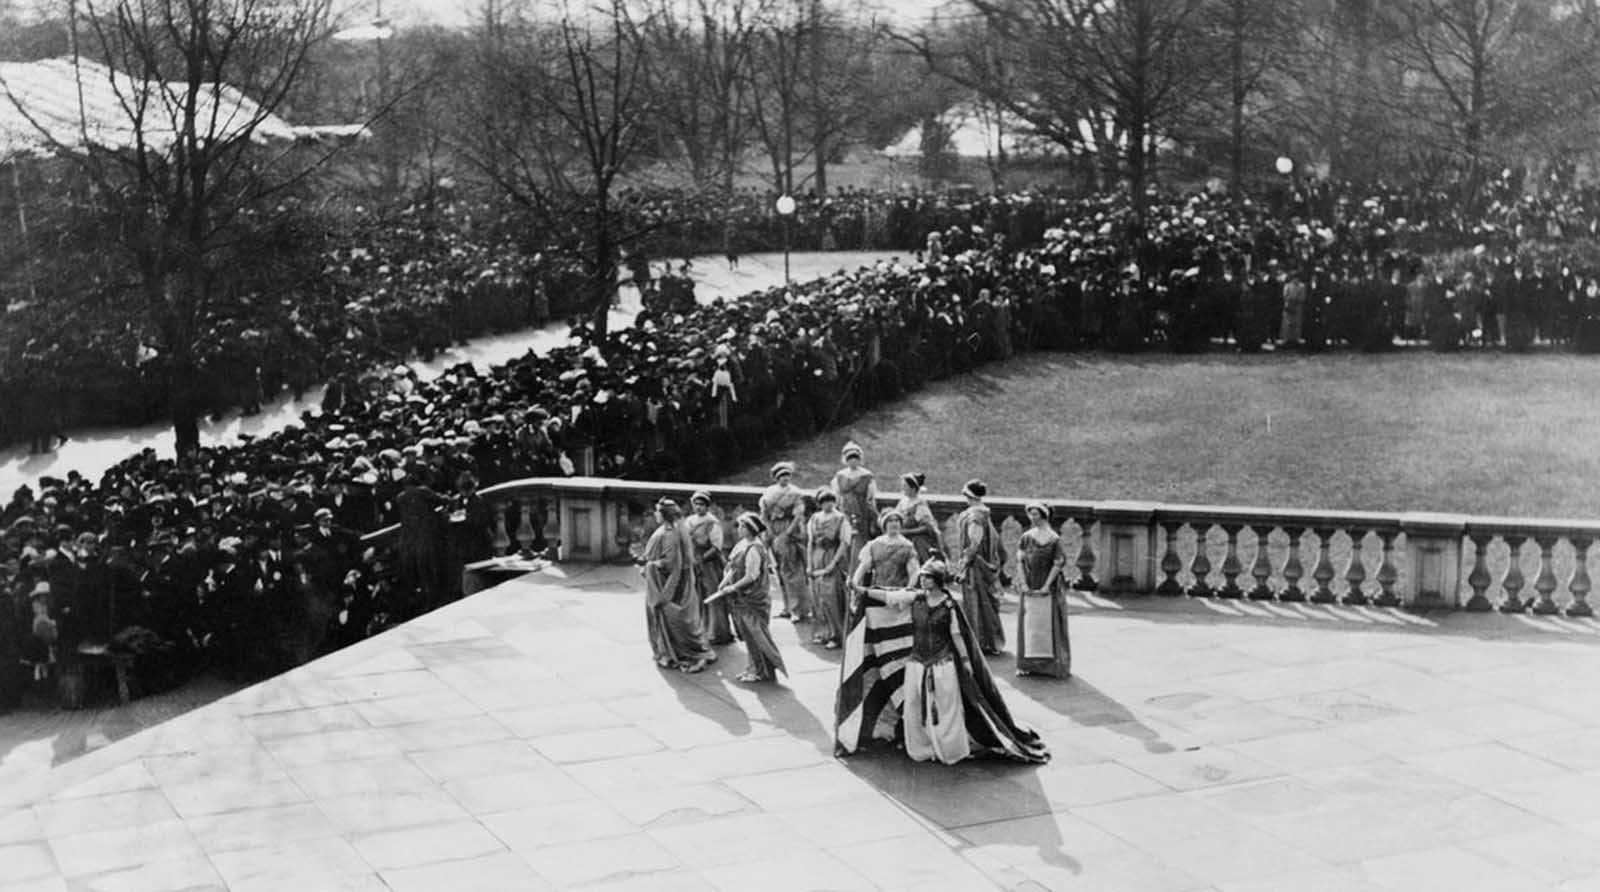 Tableau presented by the Women's Suffrage Association, on the U.S. Treasury building steps, on March 3, 1913.